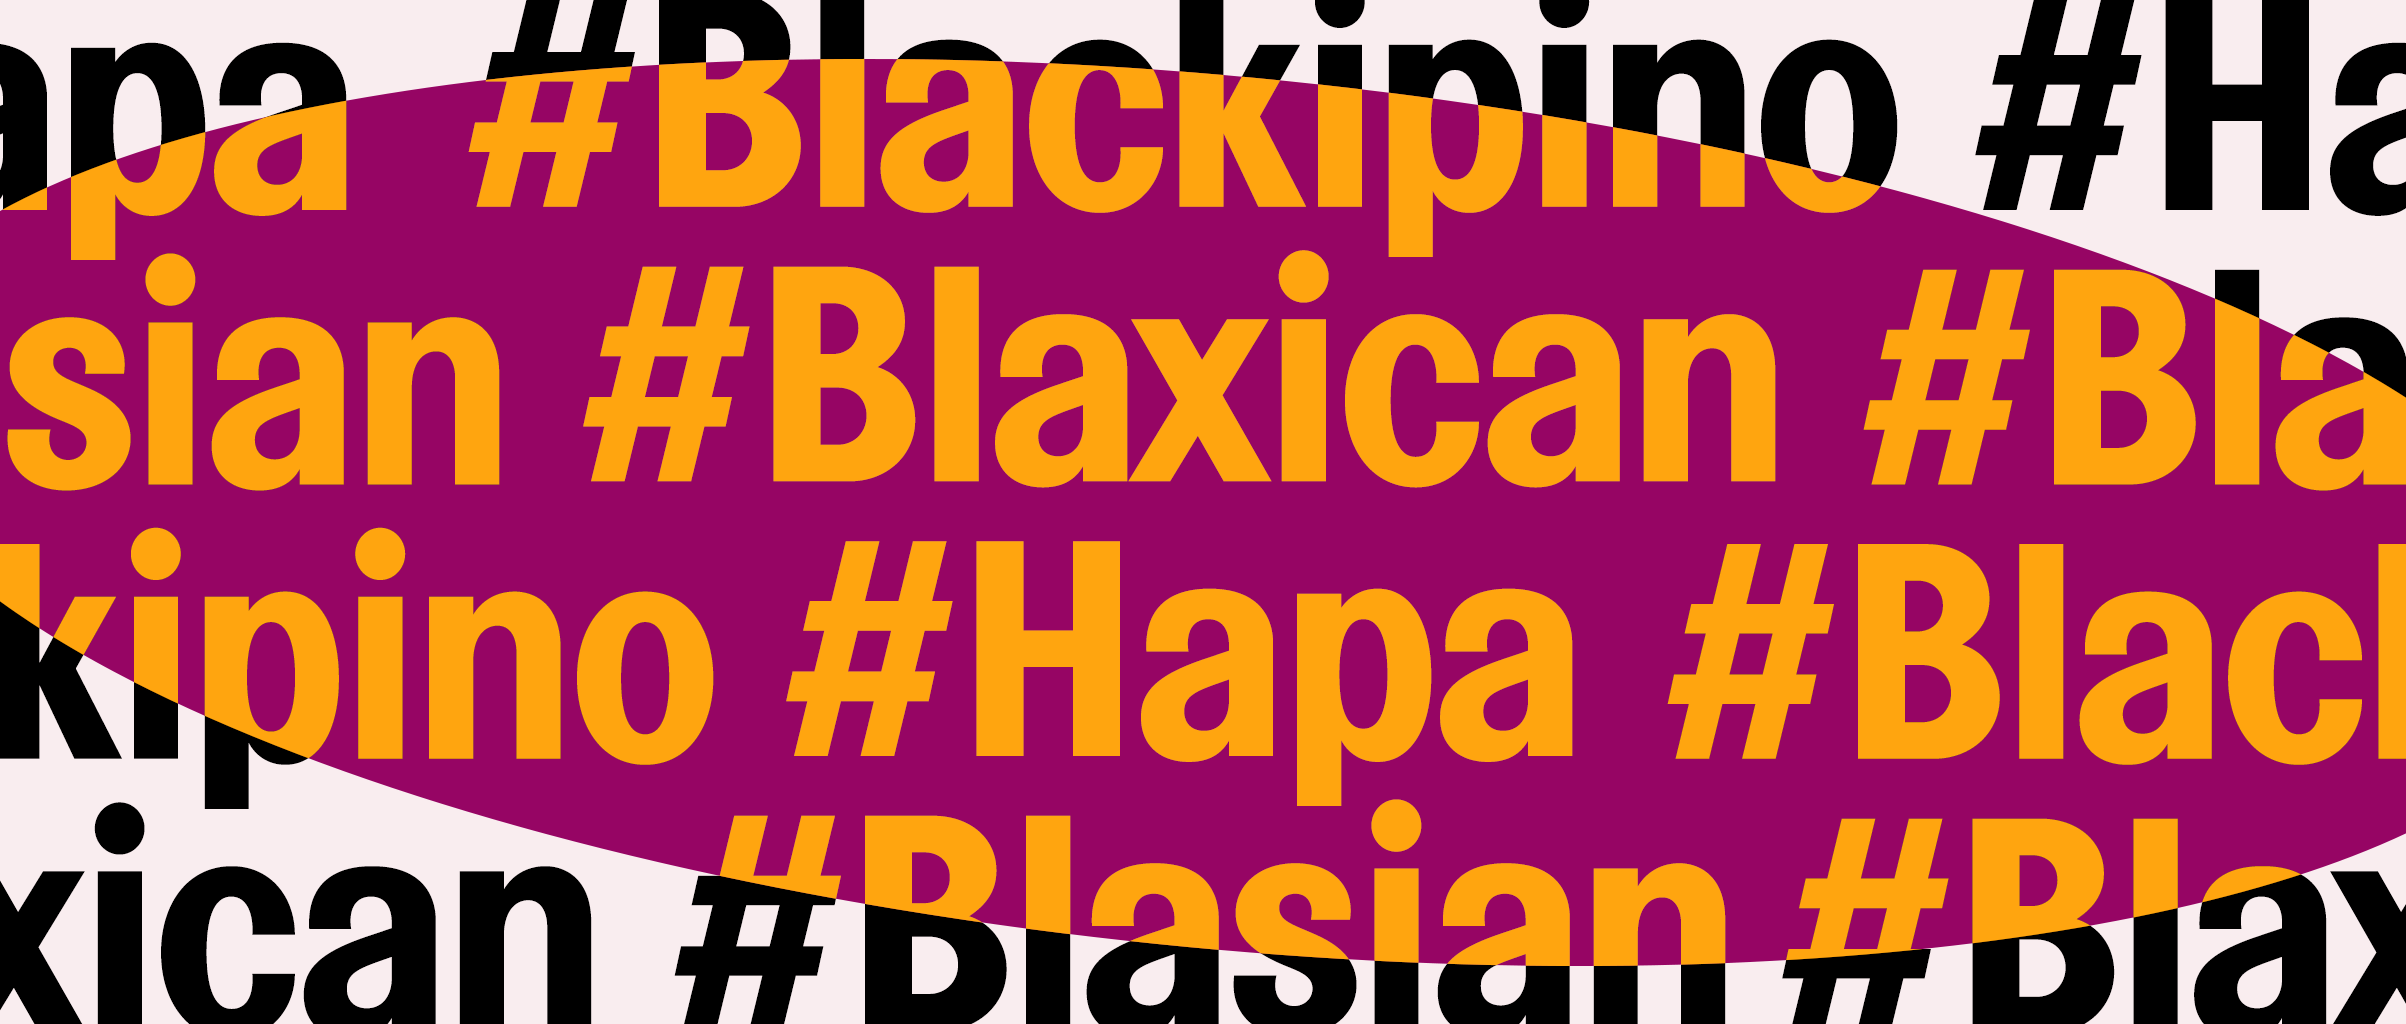 An illustrated graphic featuring various text such as: #Blackipino, #Blaxican, #Hapa, #Blasian.